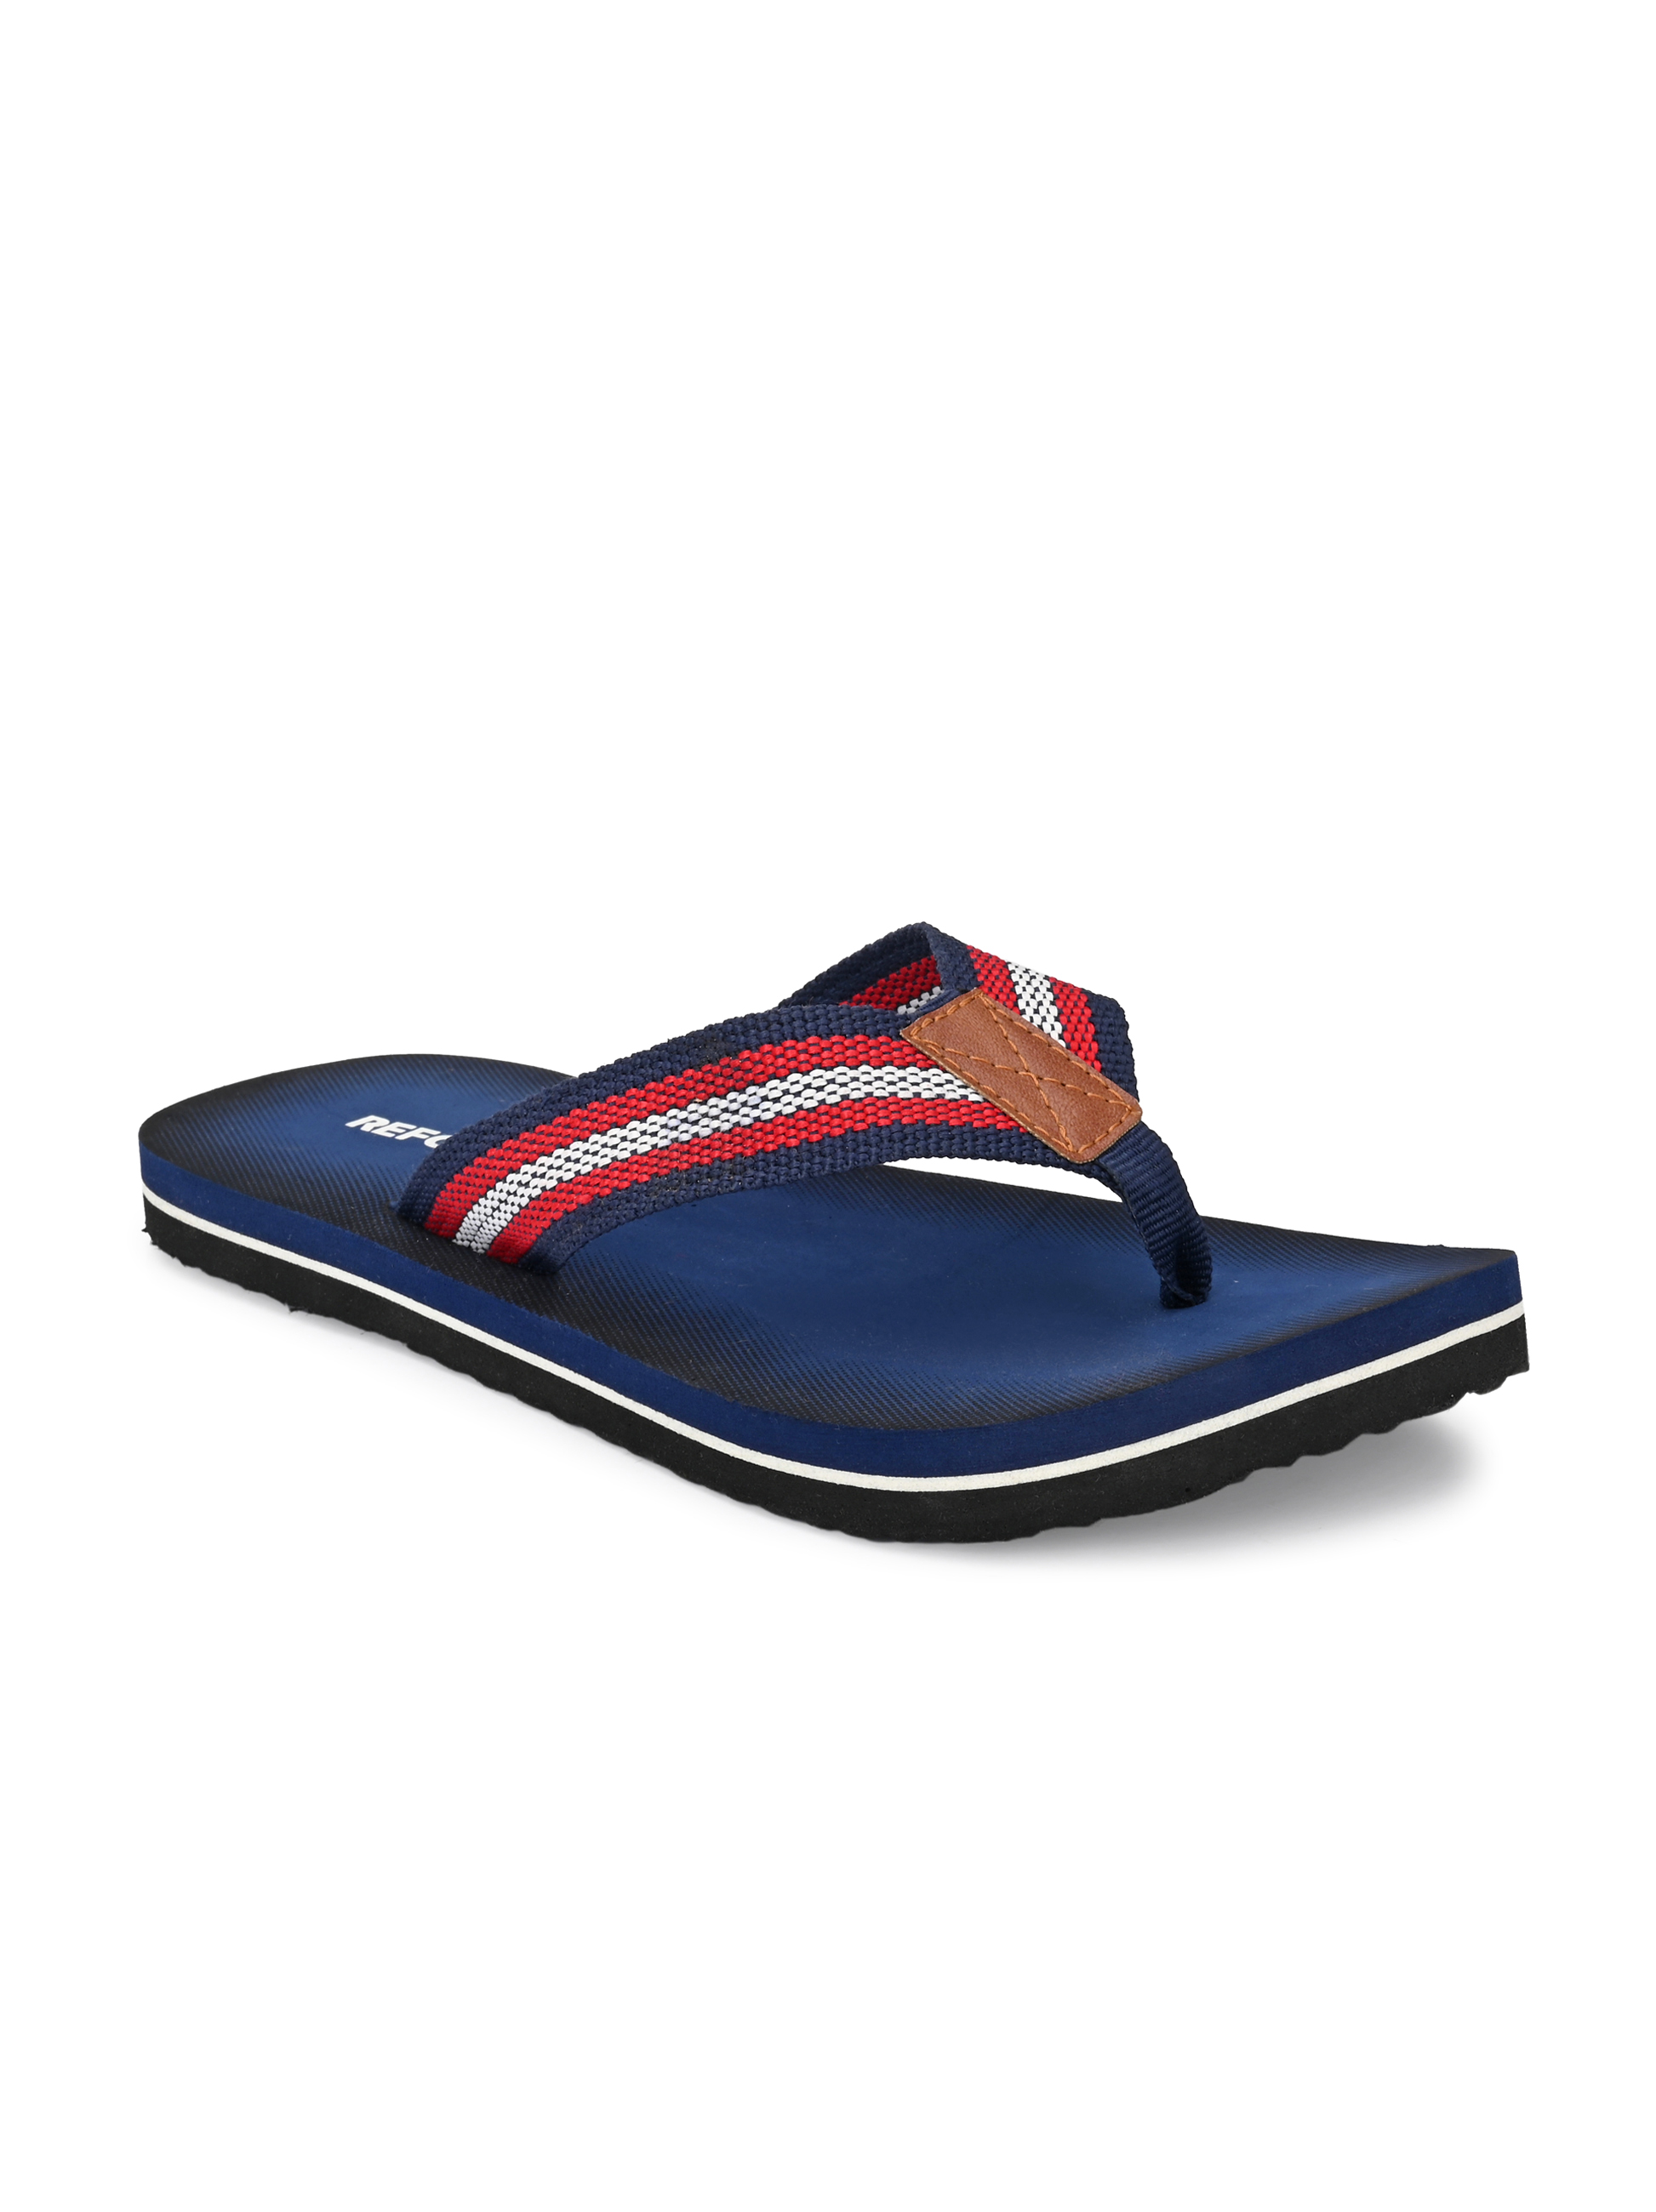 REFORCE | Reforce Men's Navy Fabric Casual Slipper